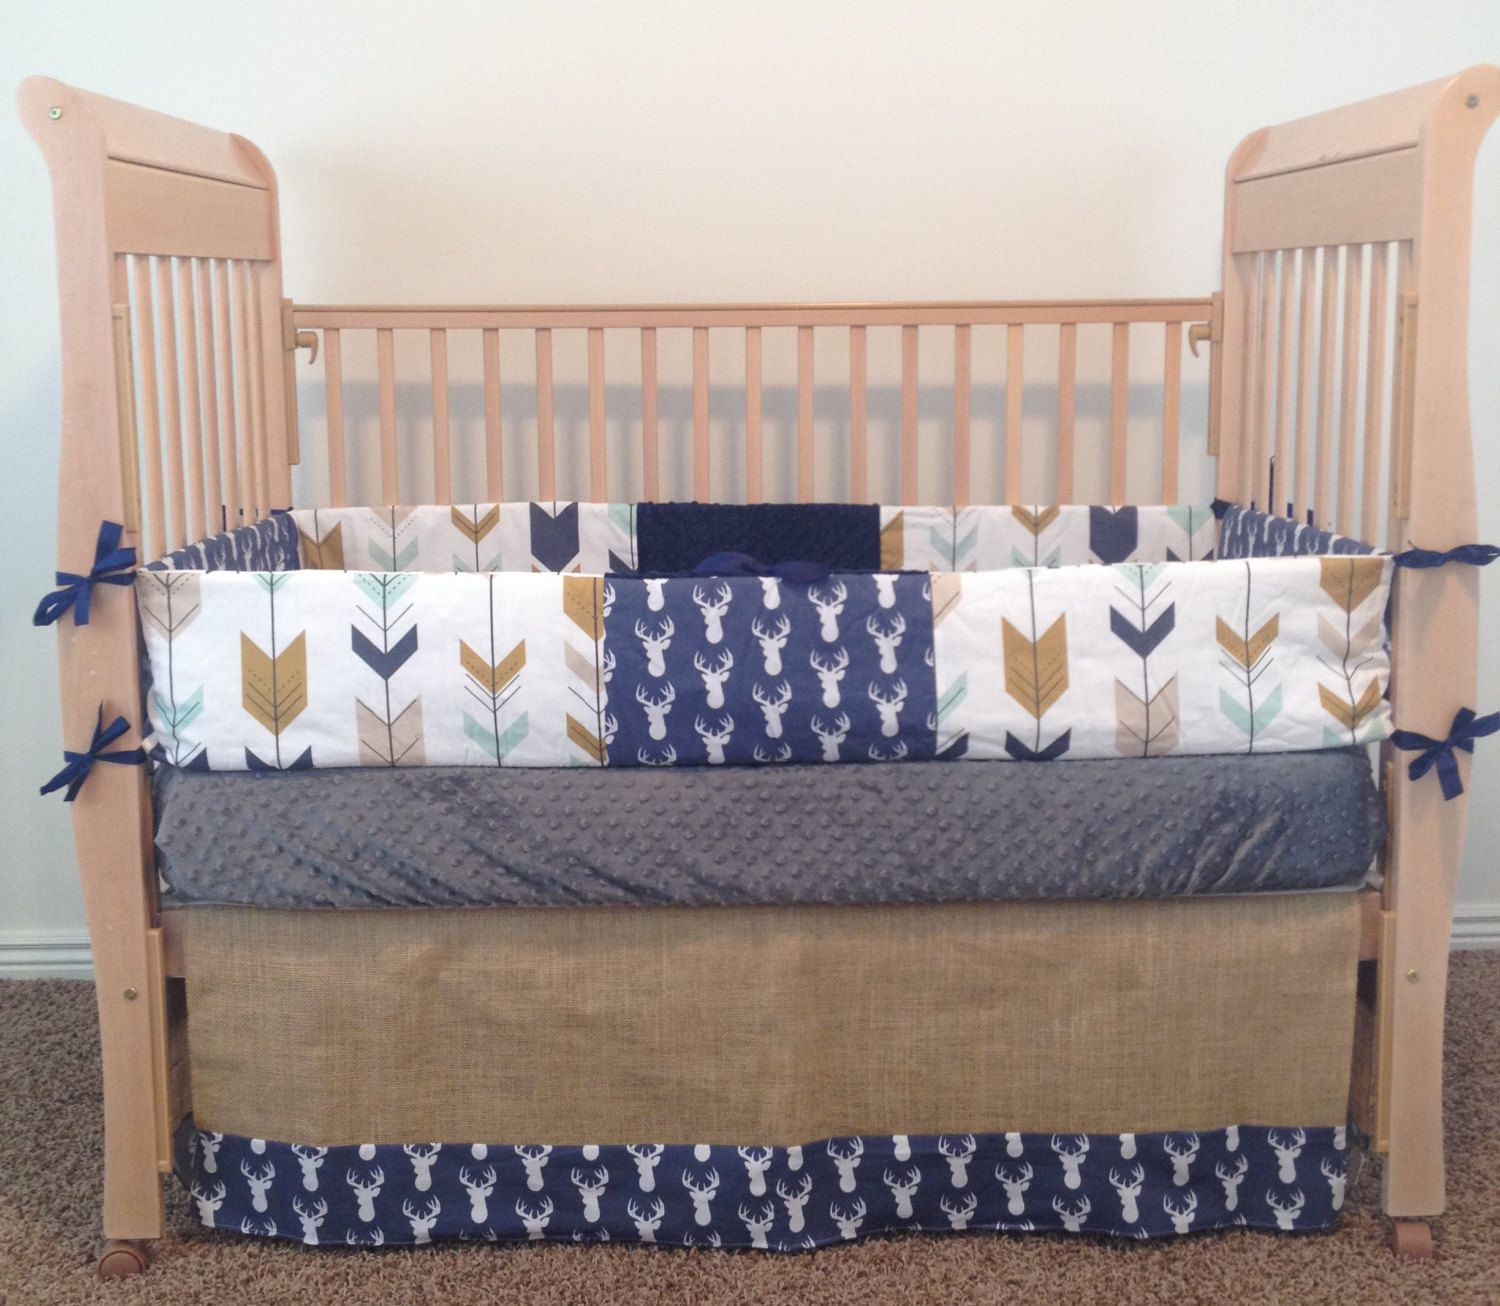 small boy baby cute gray bedding divine of brown teal into white to anadolukardiyolderg sets bumper cot turn set table size lamp doll full blue cribs dark wood clear and how bundle clearance convertible girl for hanging success crib the with quilt nursery grey stunning